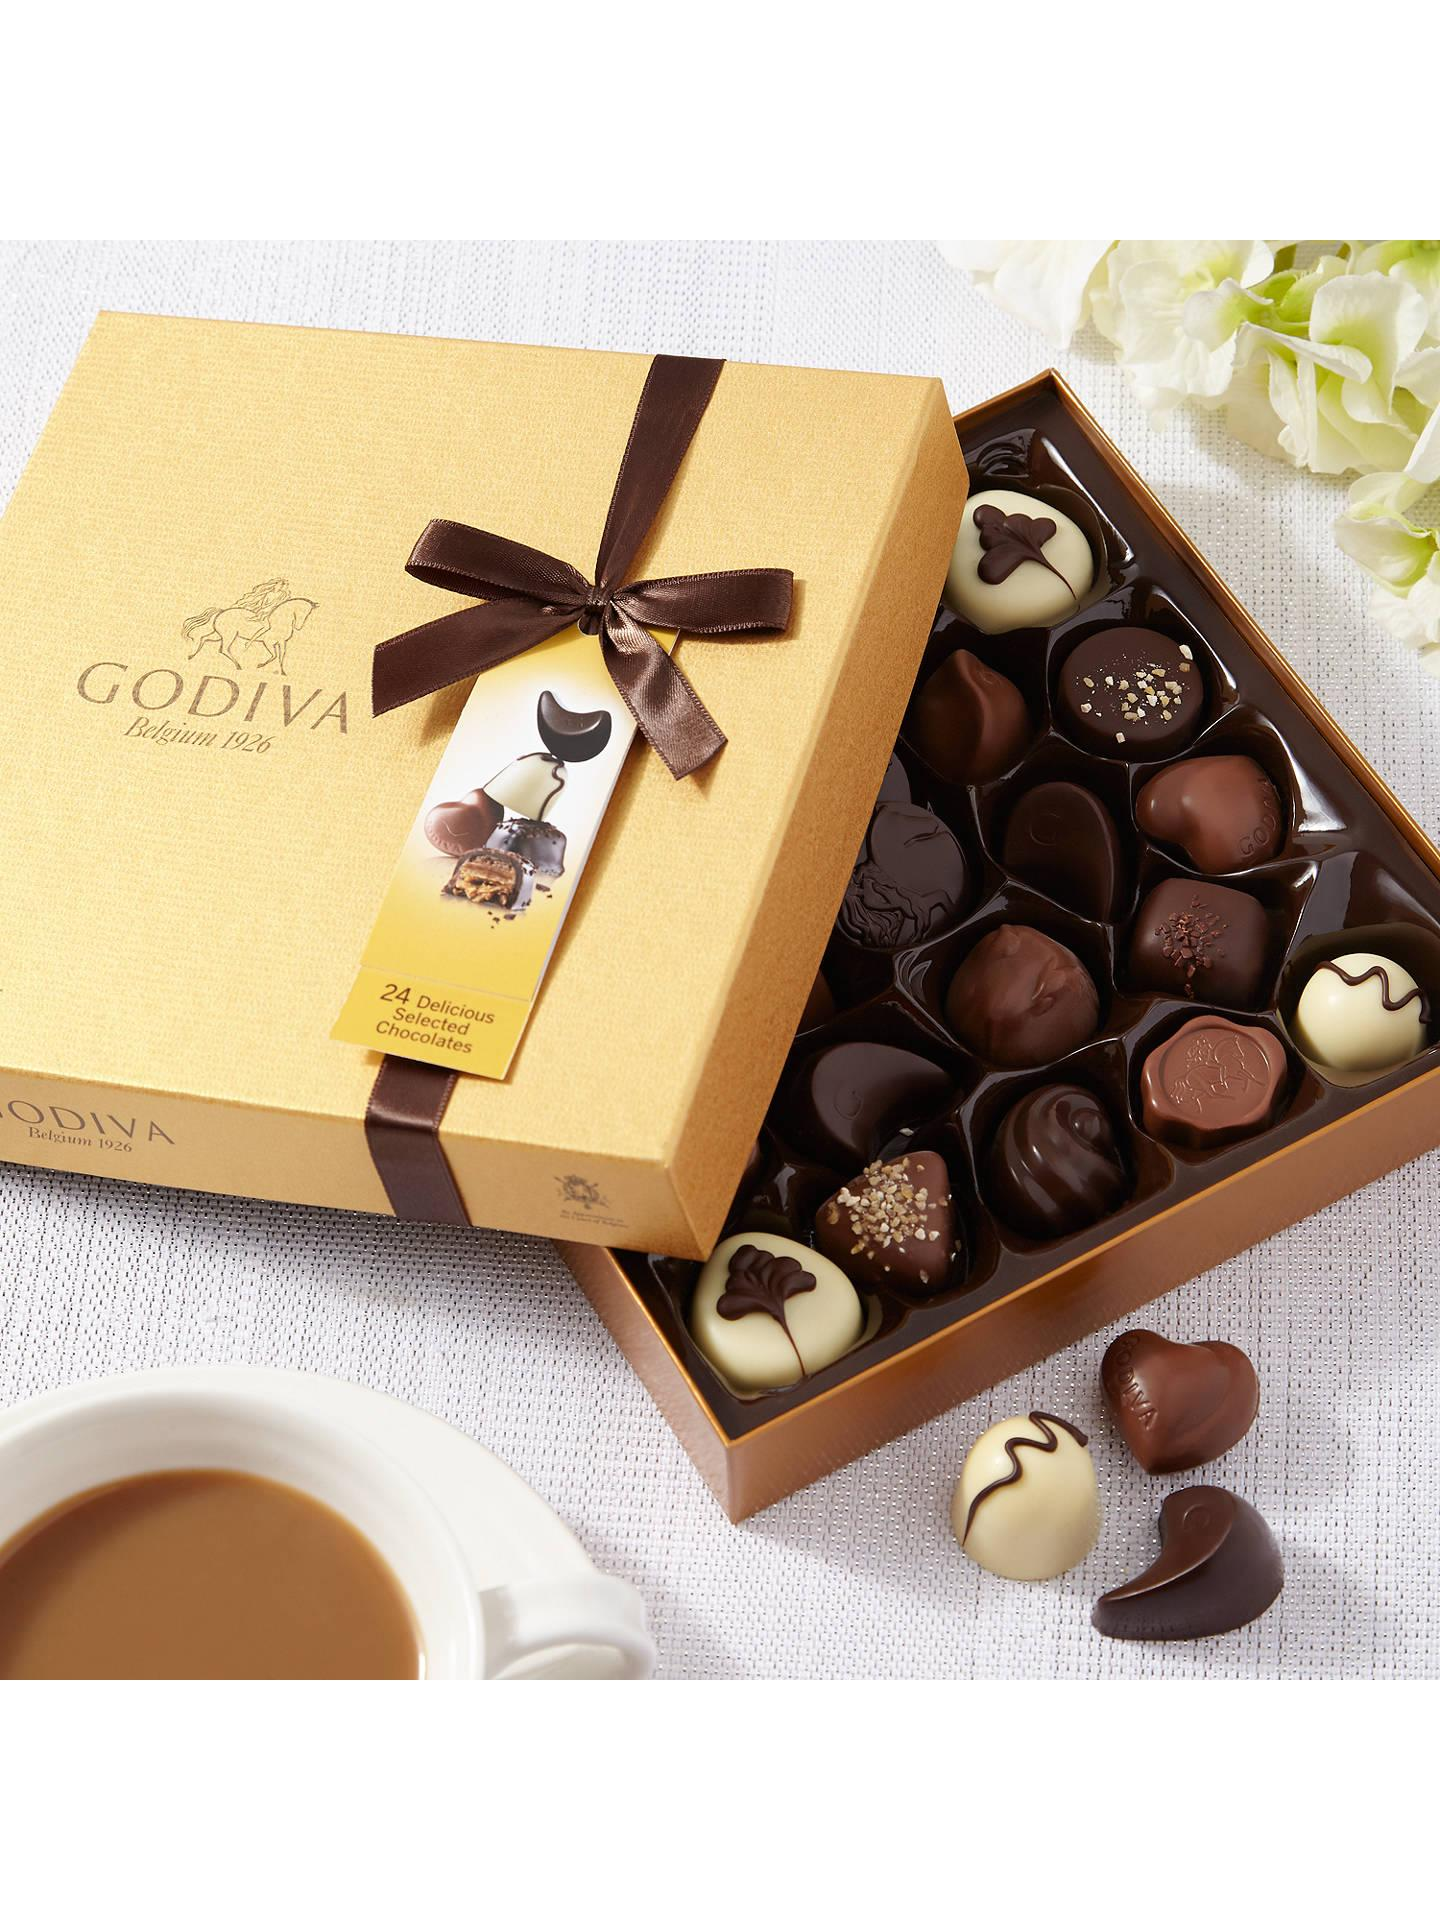 Godiva Gold Chocolate Box, 290g at John Lewis & Partners